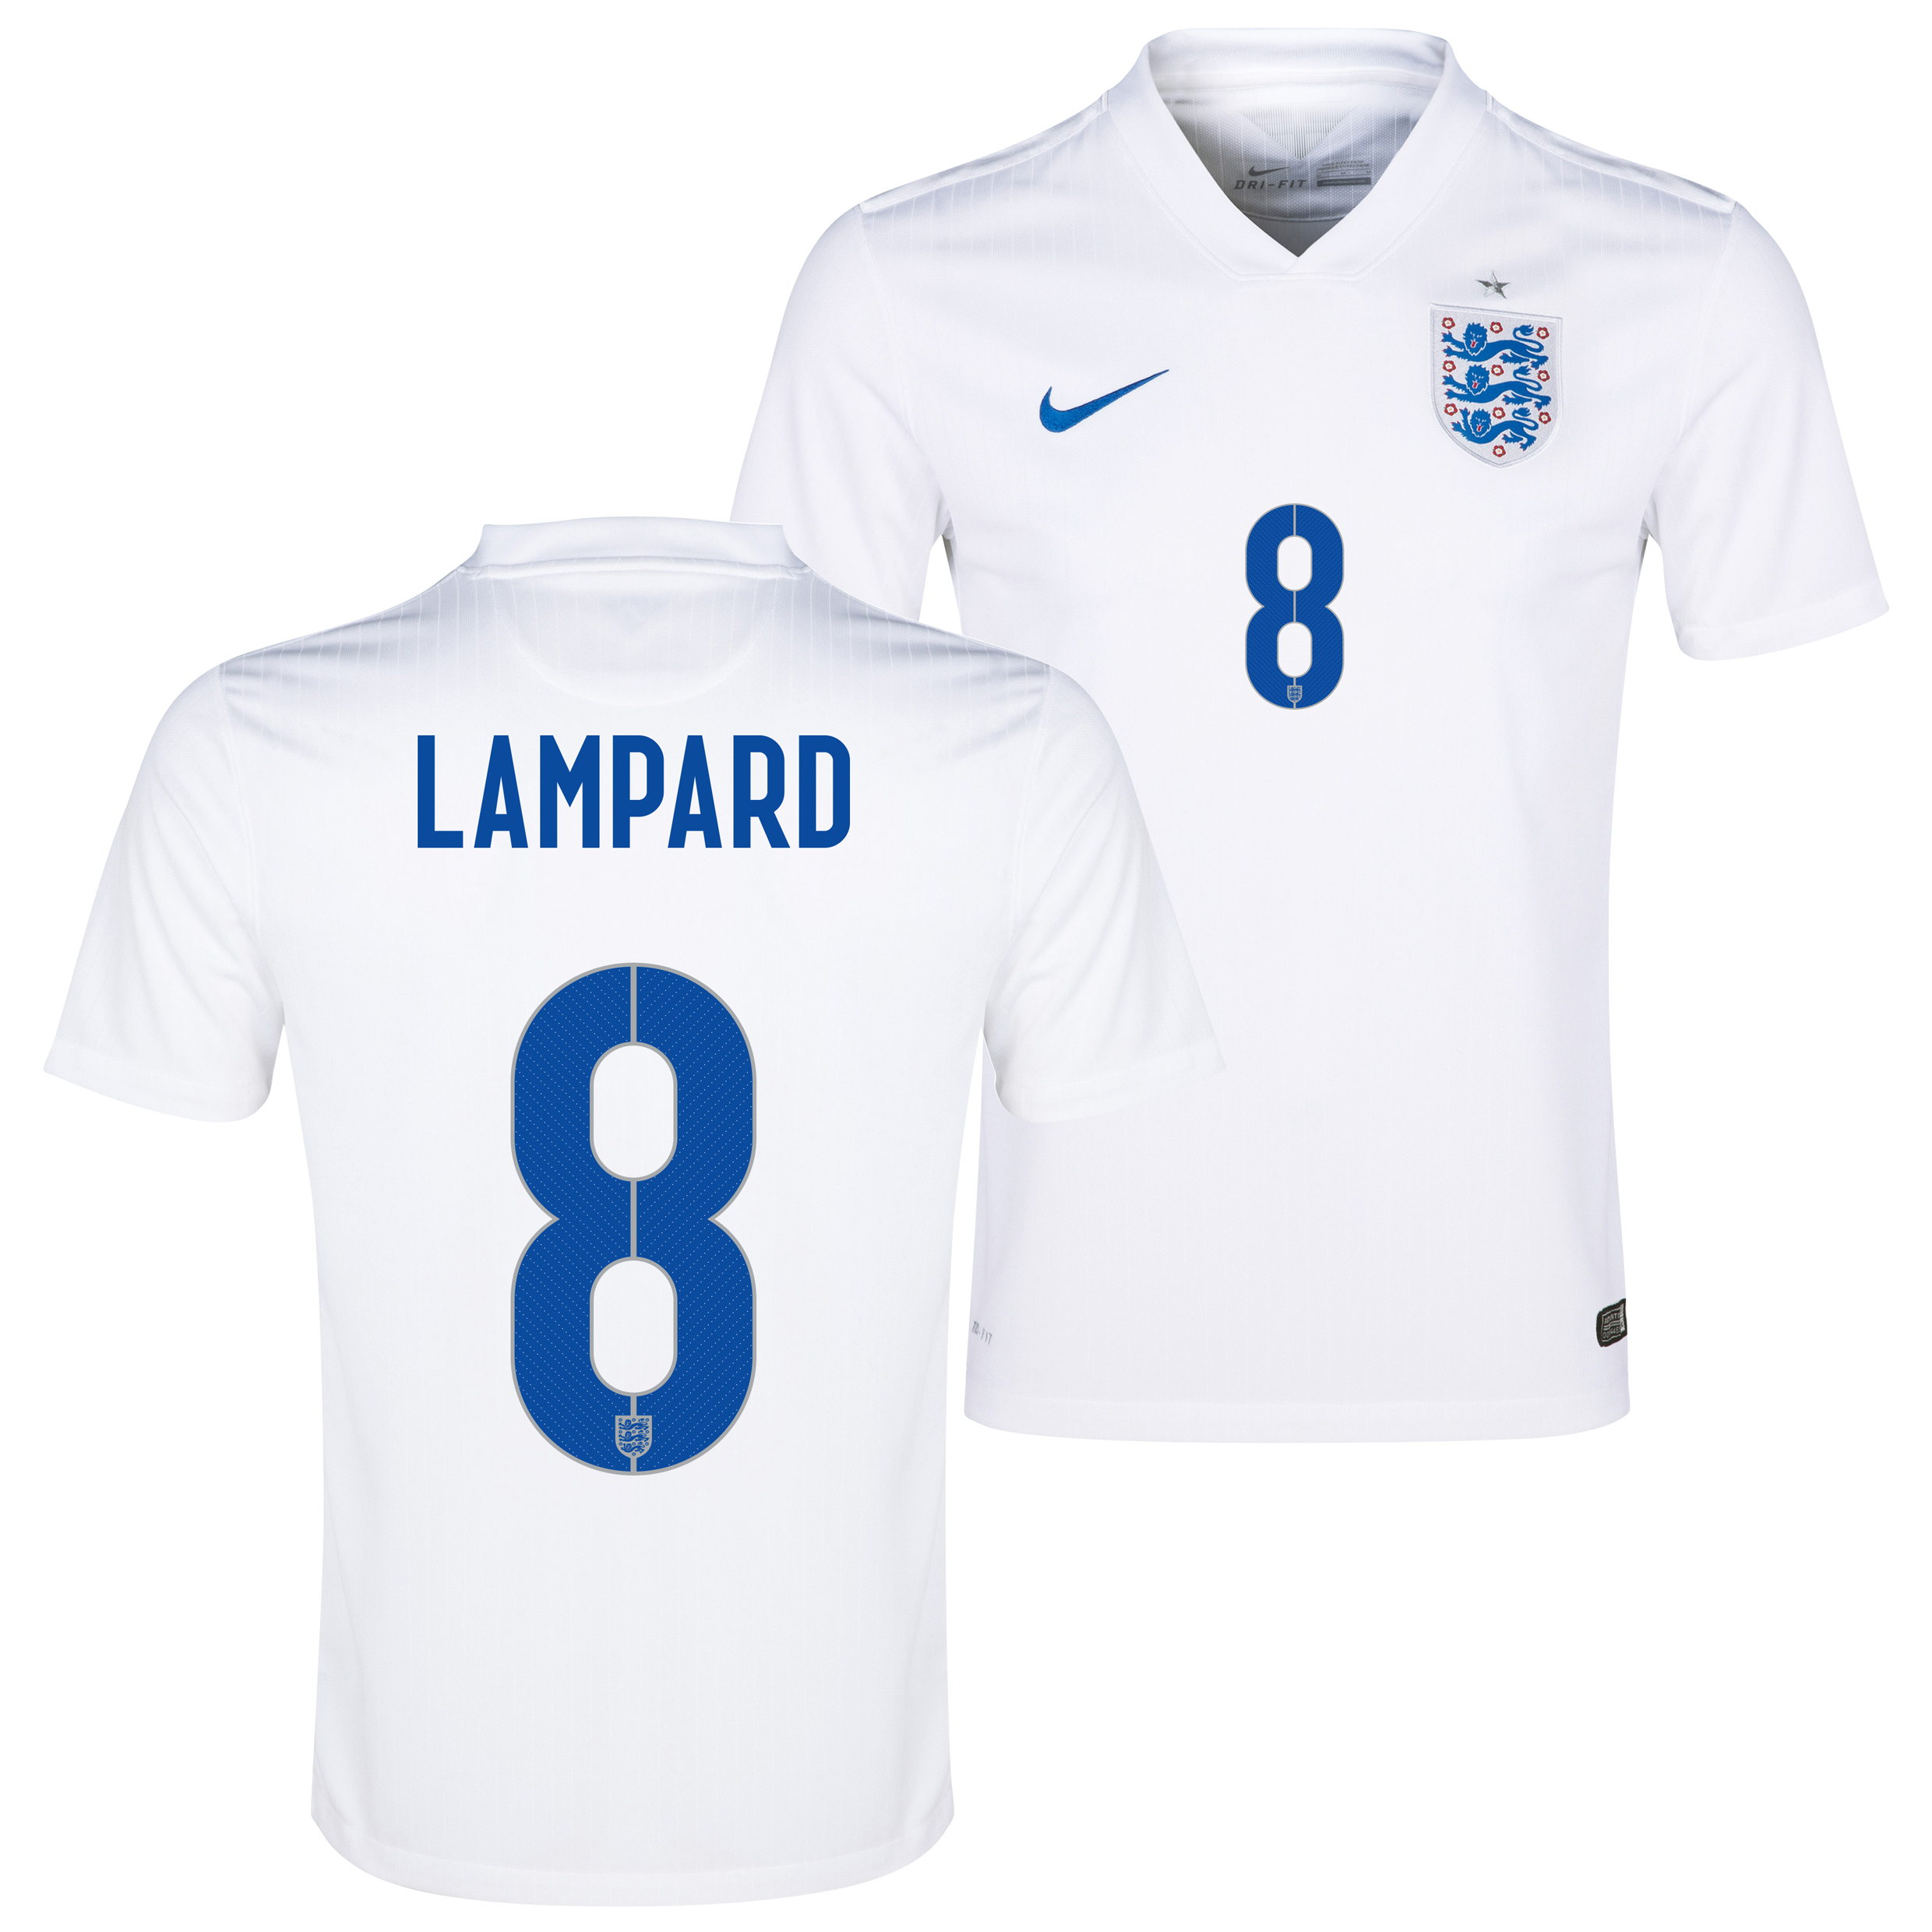 England Home Shirt 2014/15 White with Lampard 8 printing